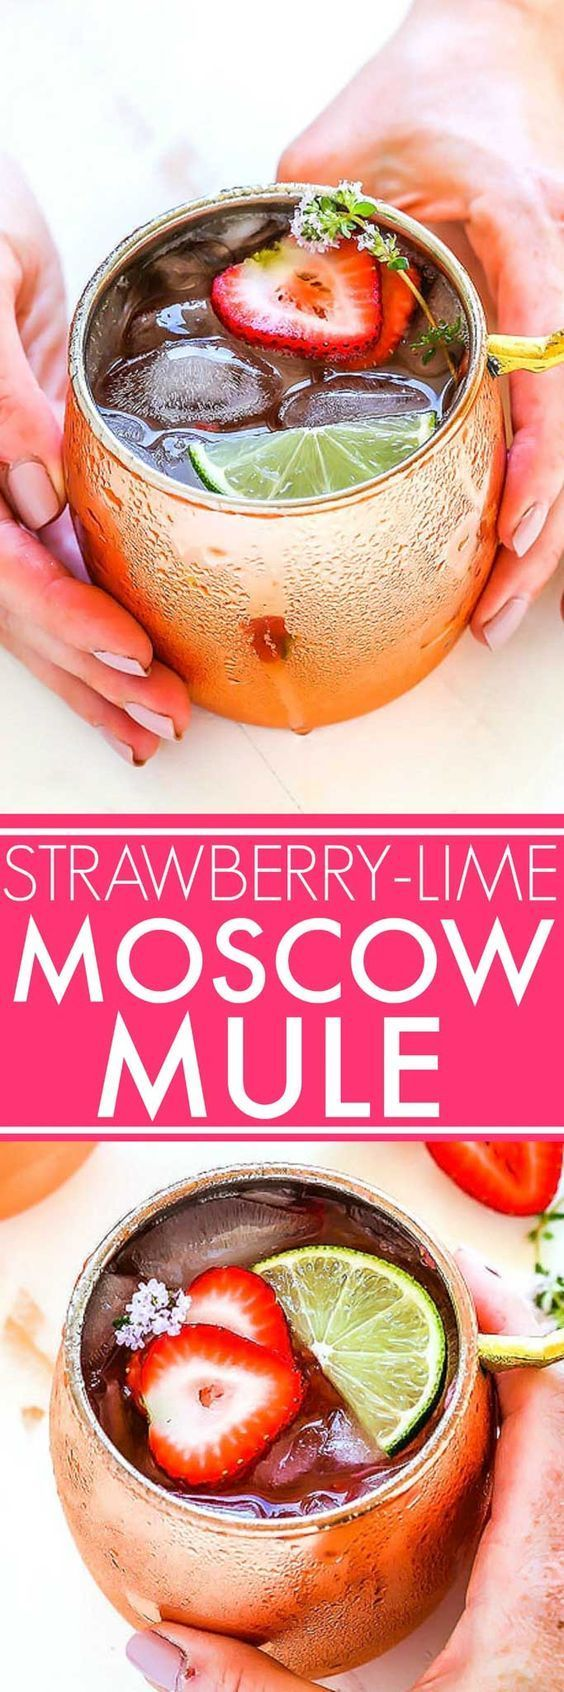 Can't wait to try this Strawberry Lime Moscow Mule! Fresh strawberries, lime juice, vodka and Bundaberg Ginger Beer come together to make this refreshing summer cocktail. And it only takes 5 mins to make! Msg21+ AD http://www.platingsandpairings.com/strawberry-lime-moscow-mule/